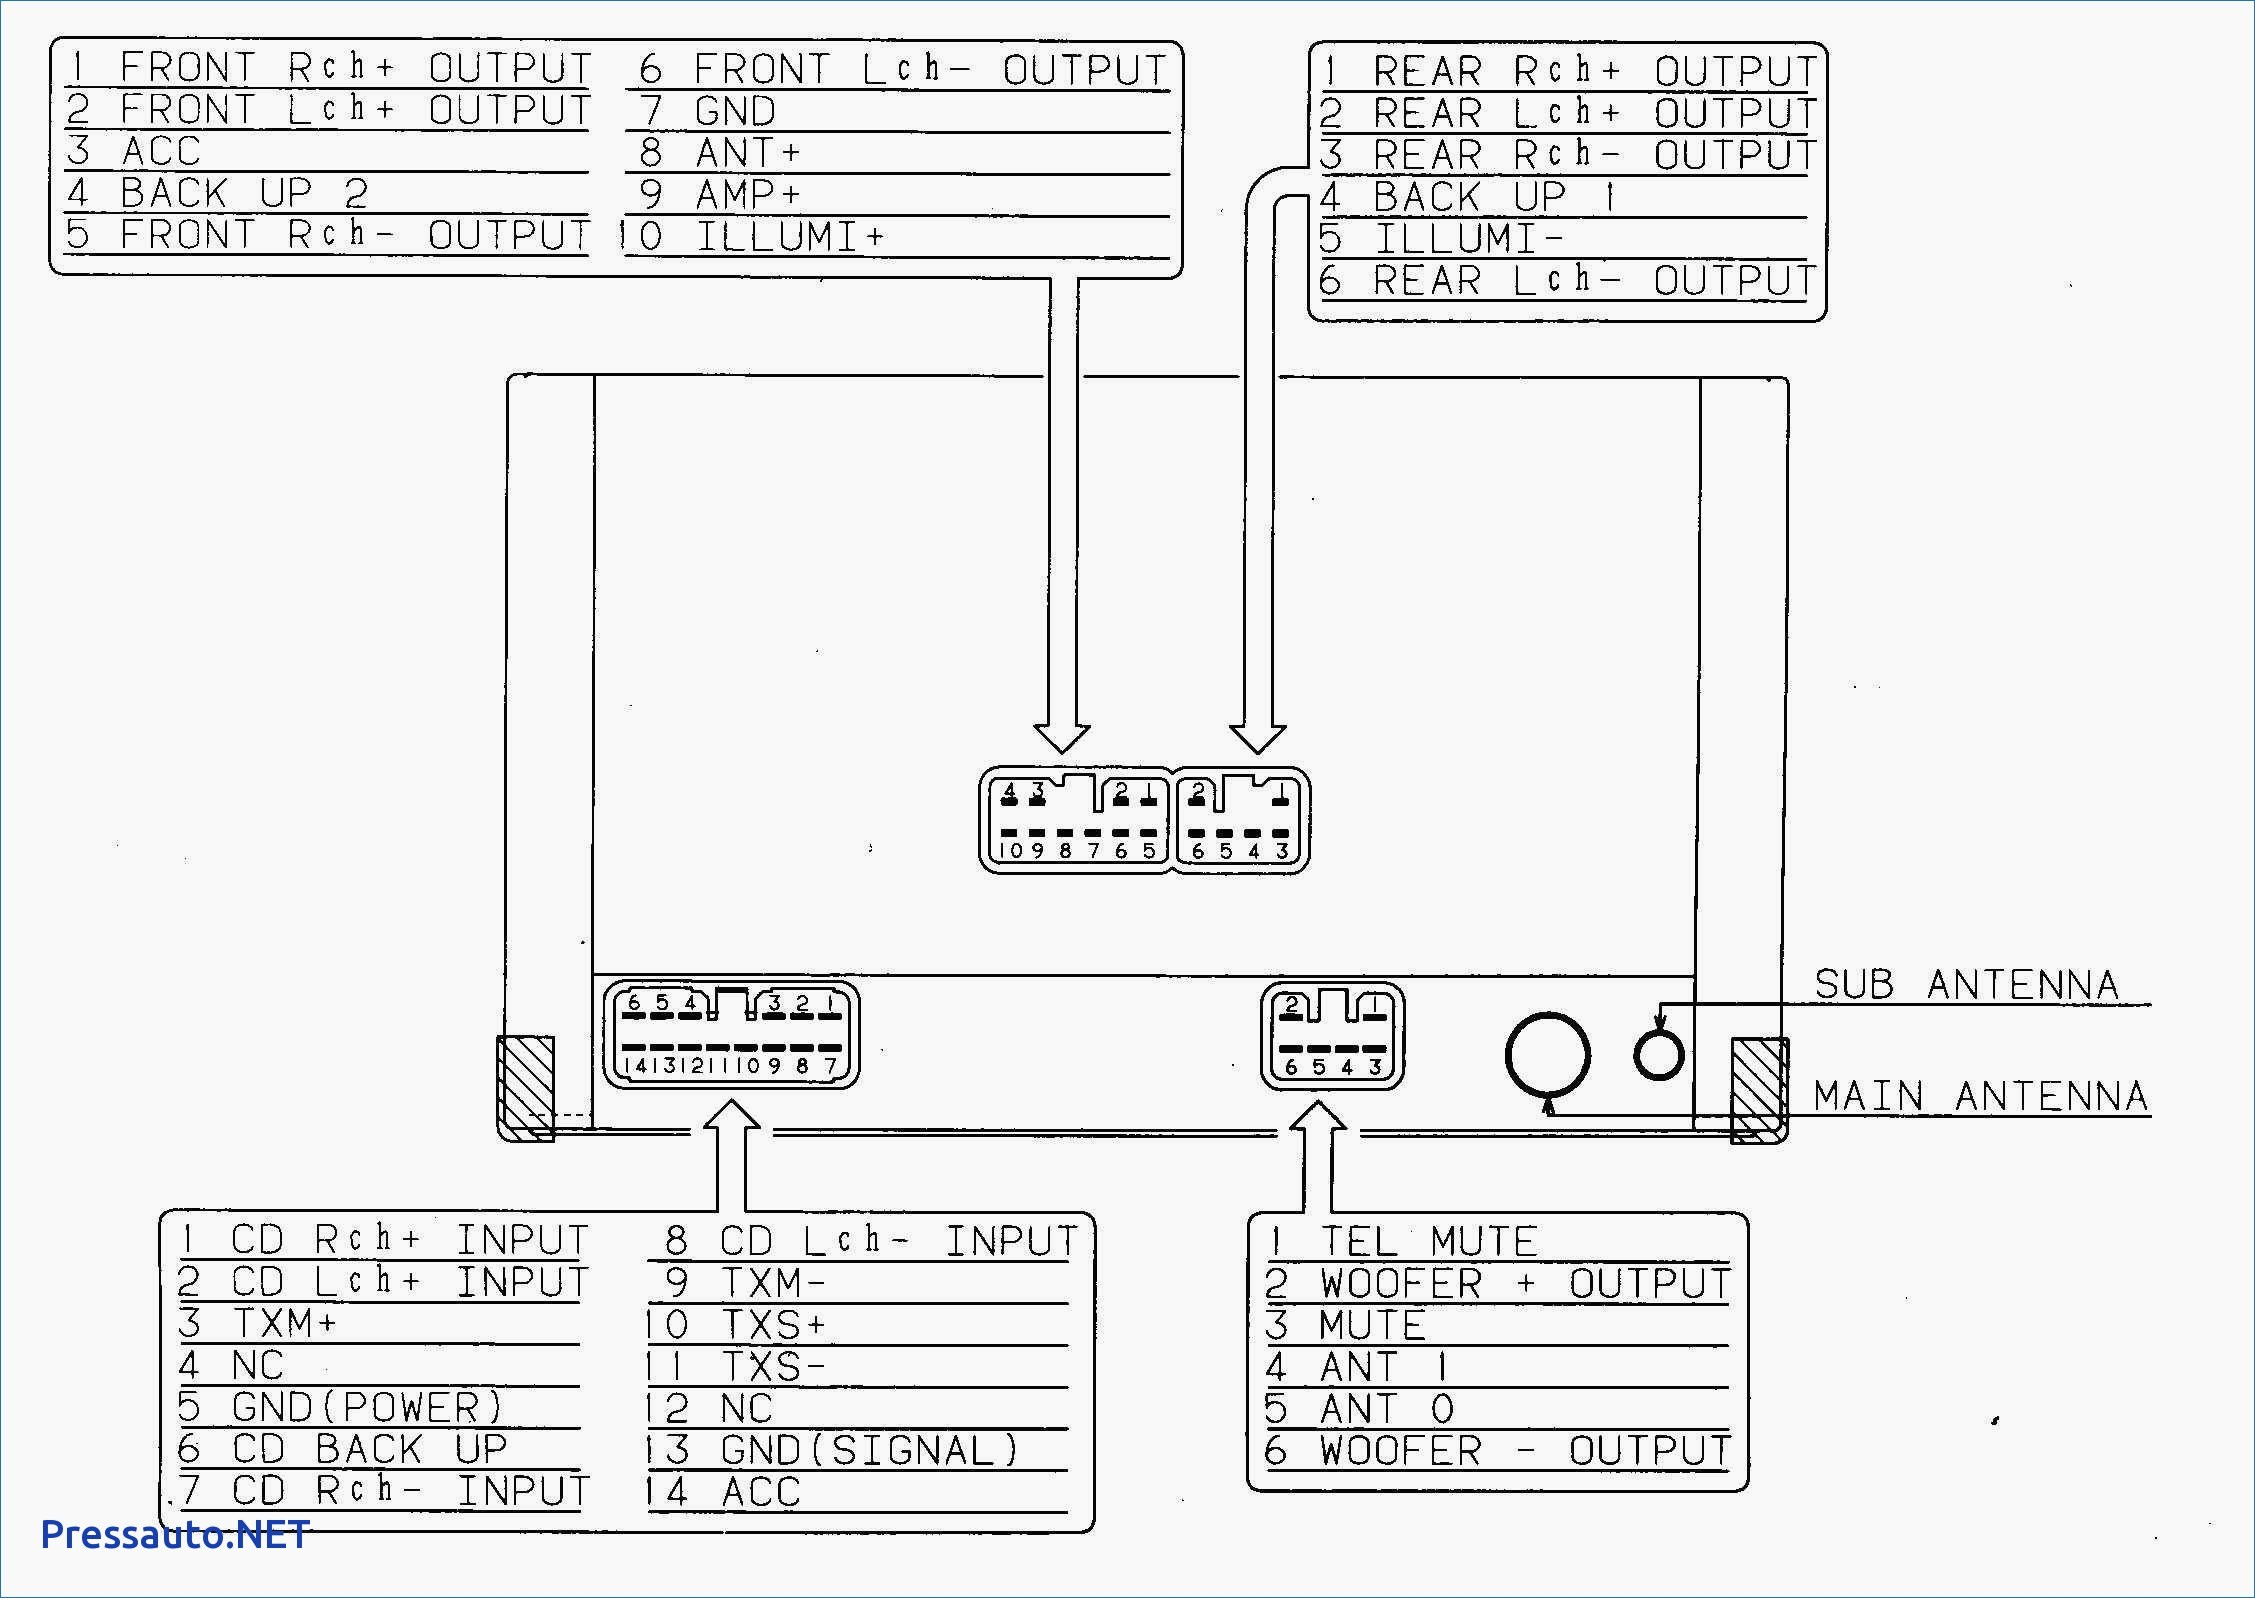 DIAGRAM] Pioneer Deh X66bt Wiring Harness Diagram FULL Version HD Quality  Harness Diagram - CM631UDWIRING.CONCESSIONARIABELOGISENIGALLIA.ITconcessionariabelogisenigallia.it